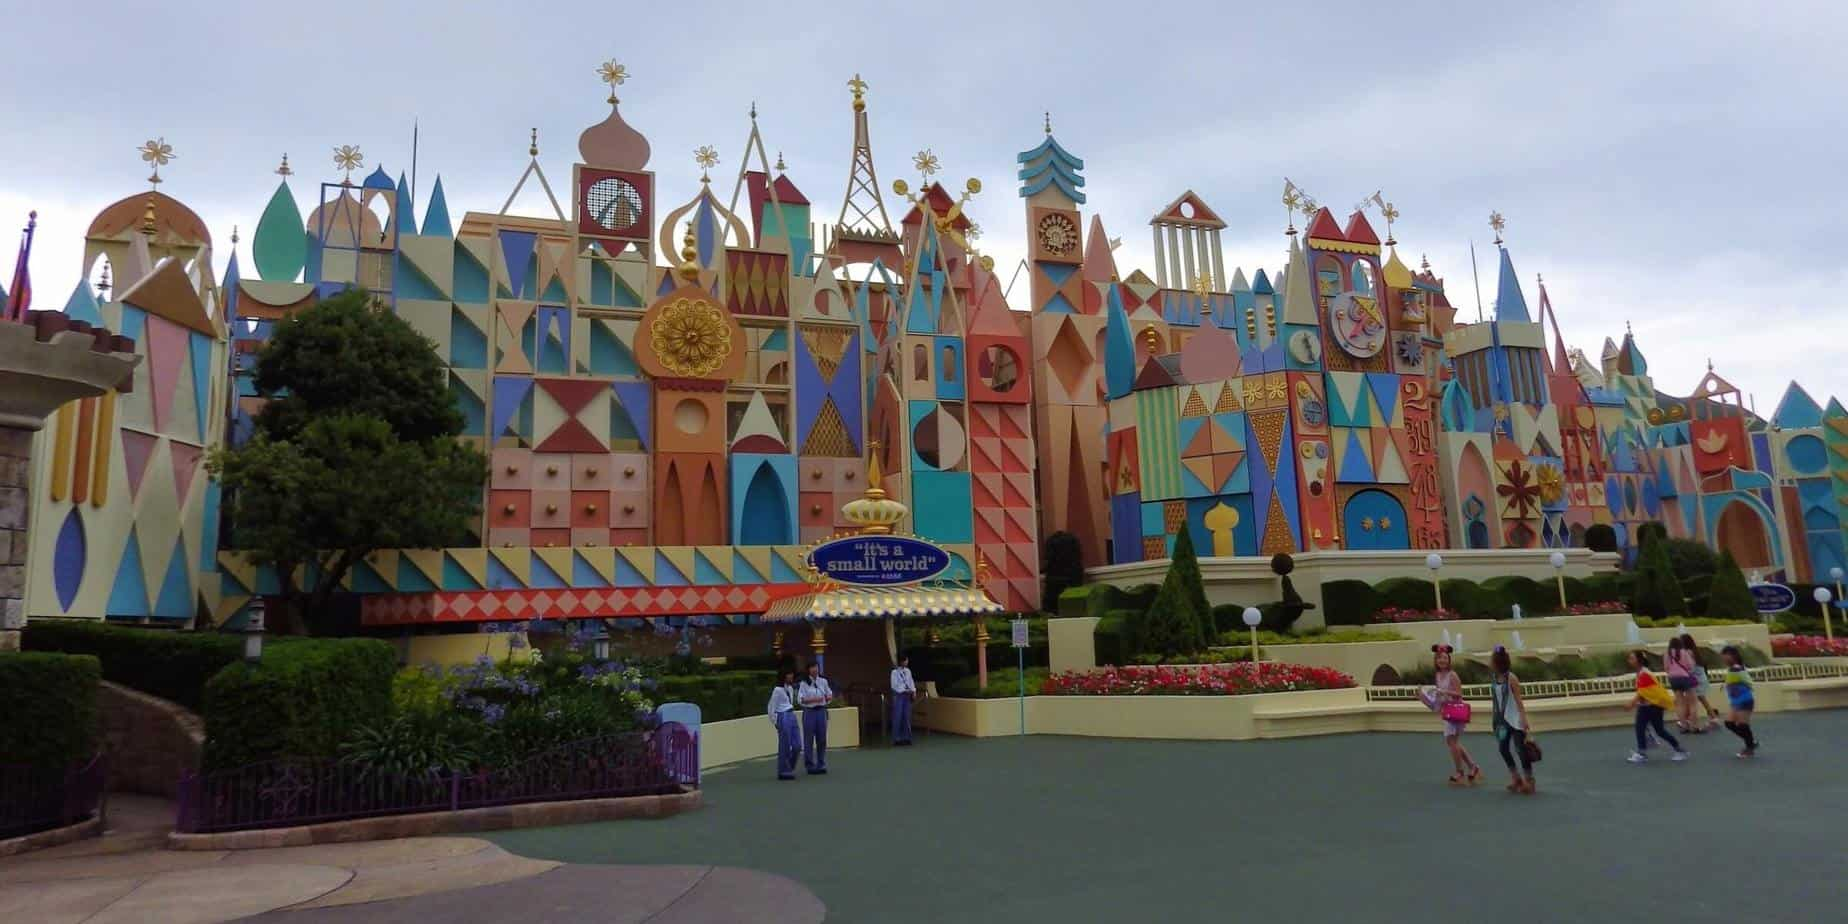 It's a Small World at TDL